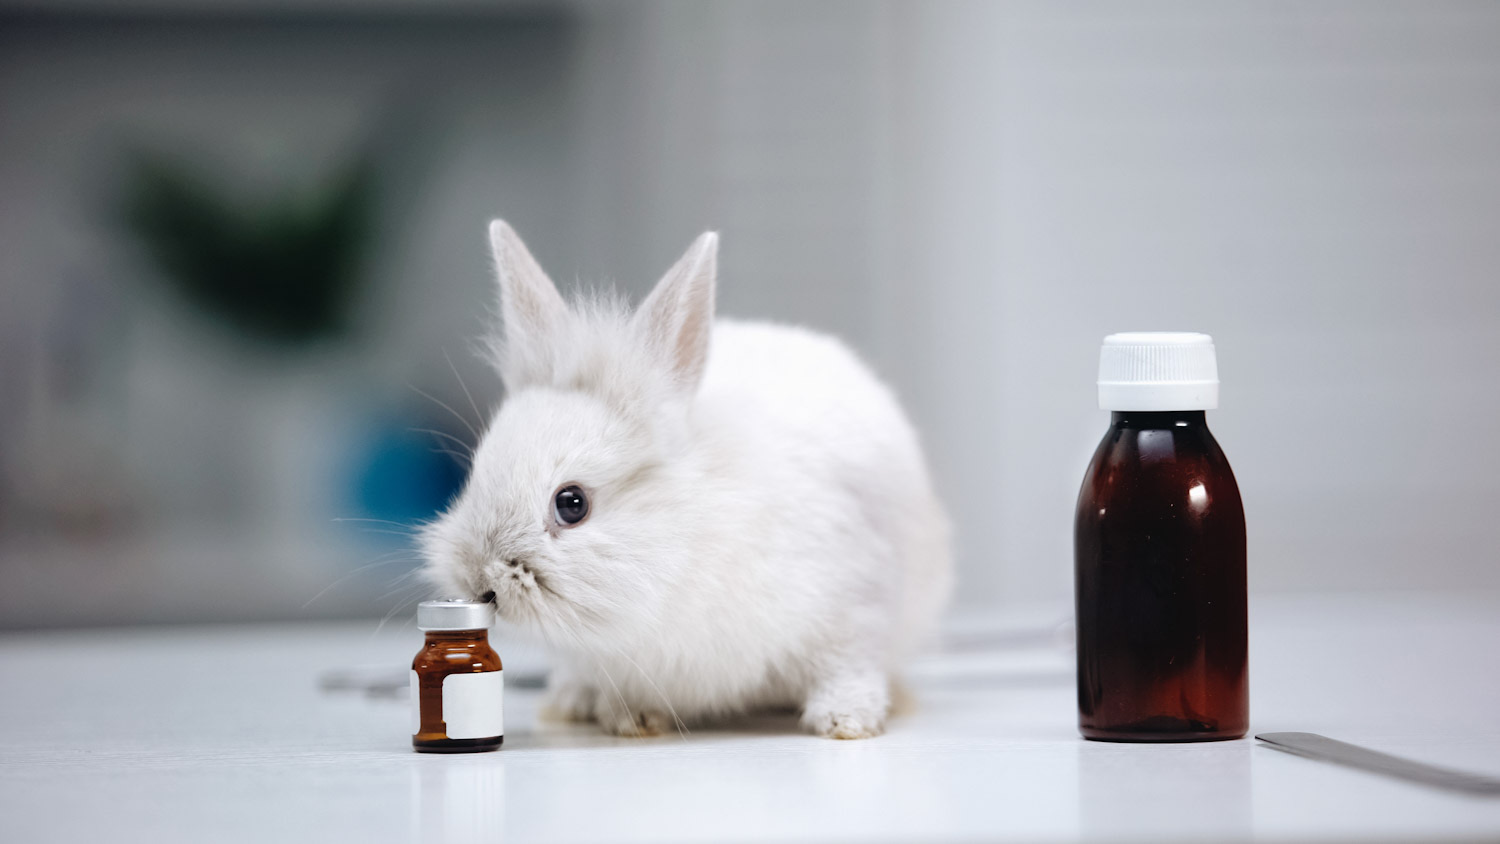 Photo shows a small white rabbit in a sterile lab setting, next to two small medicinal-looking bottles. The EU just voted overwhelmingly in favor of an end to animal experiments.